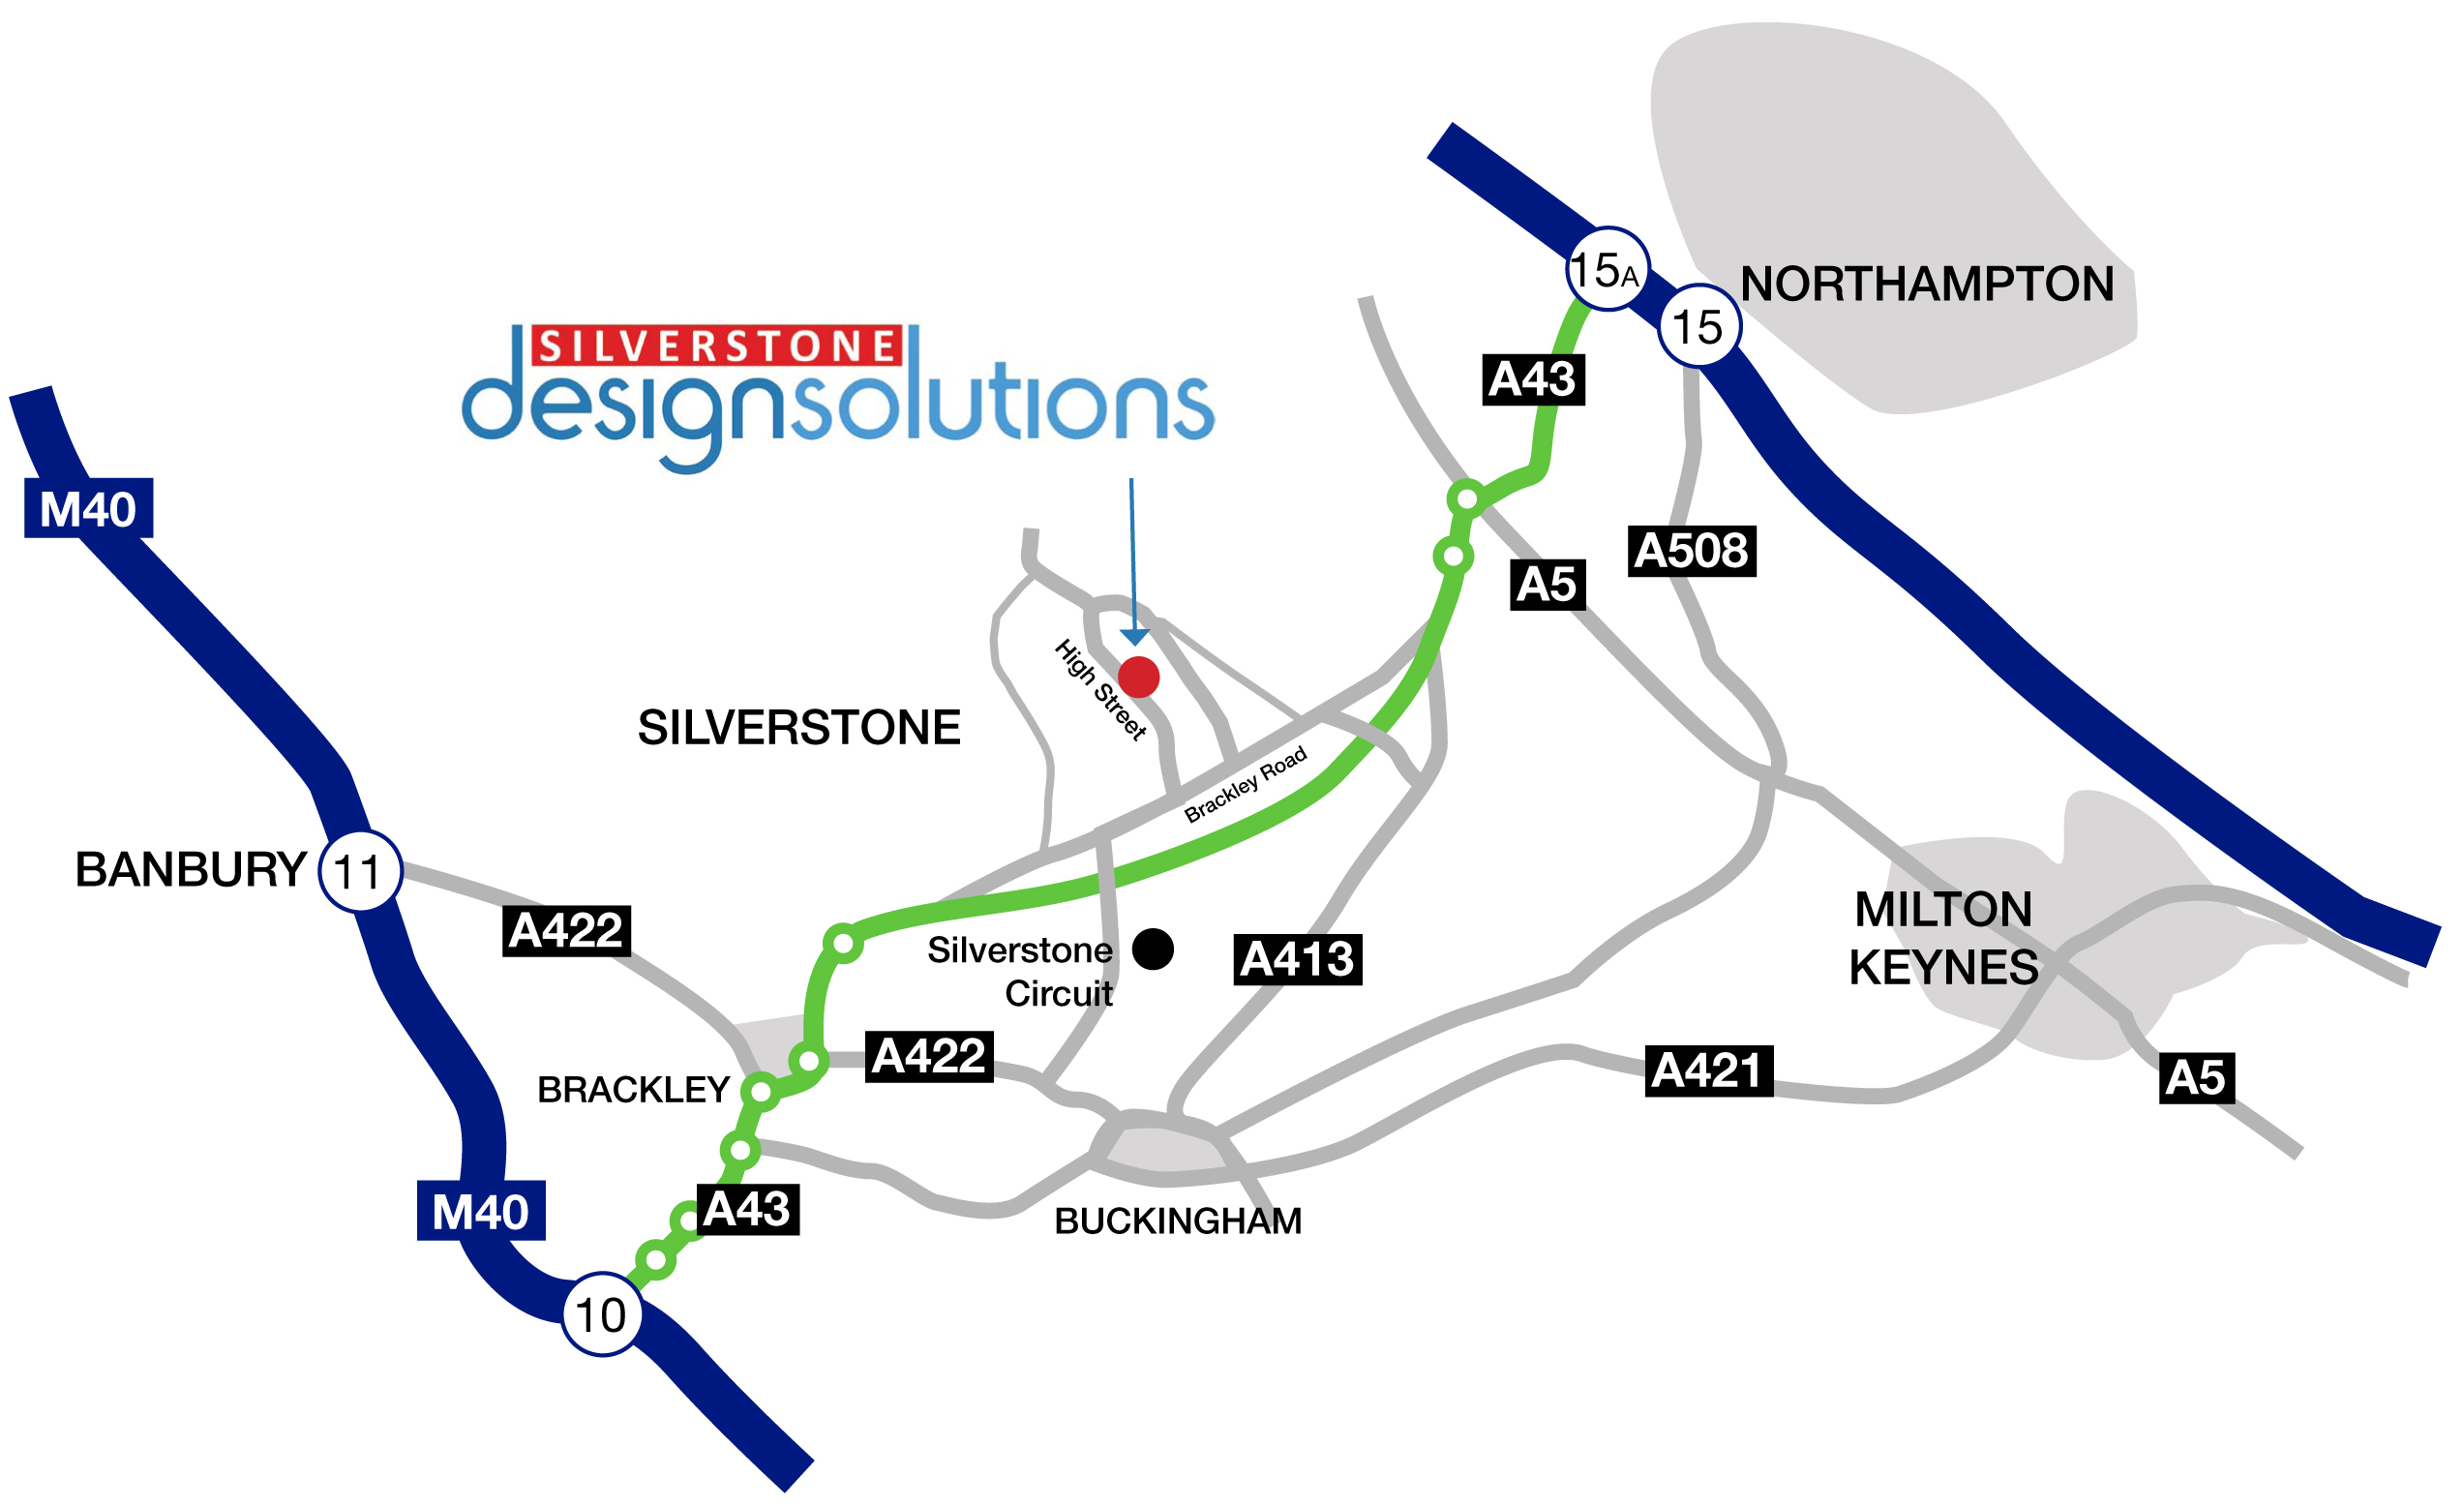 contact silverstone design solutions